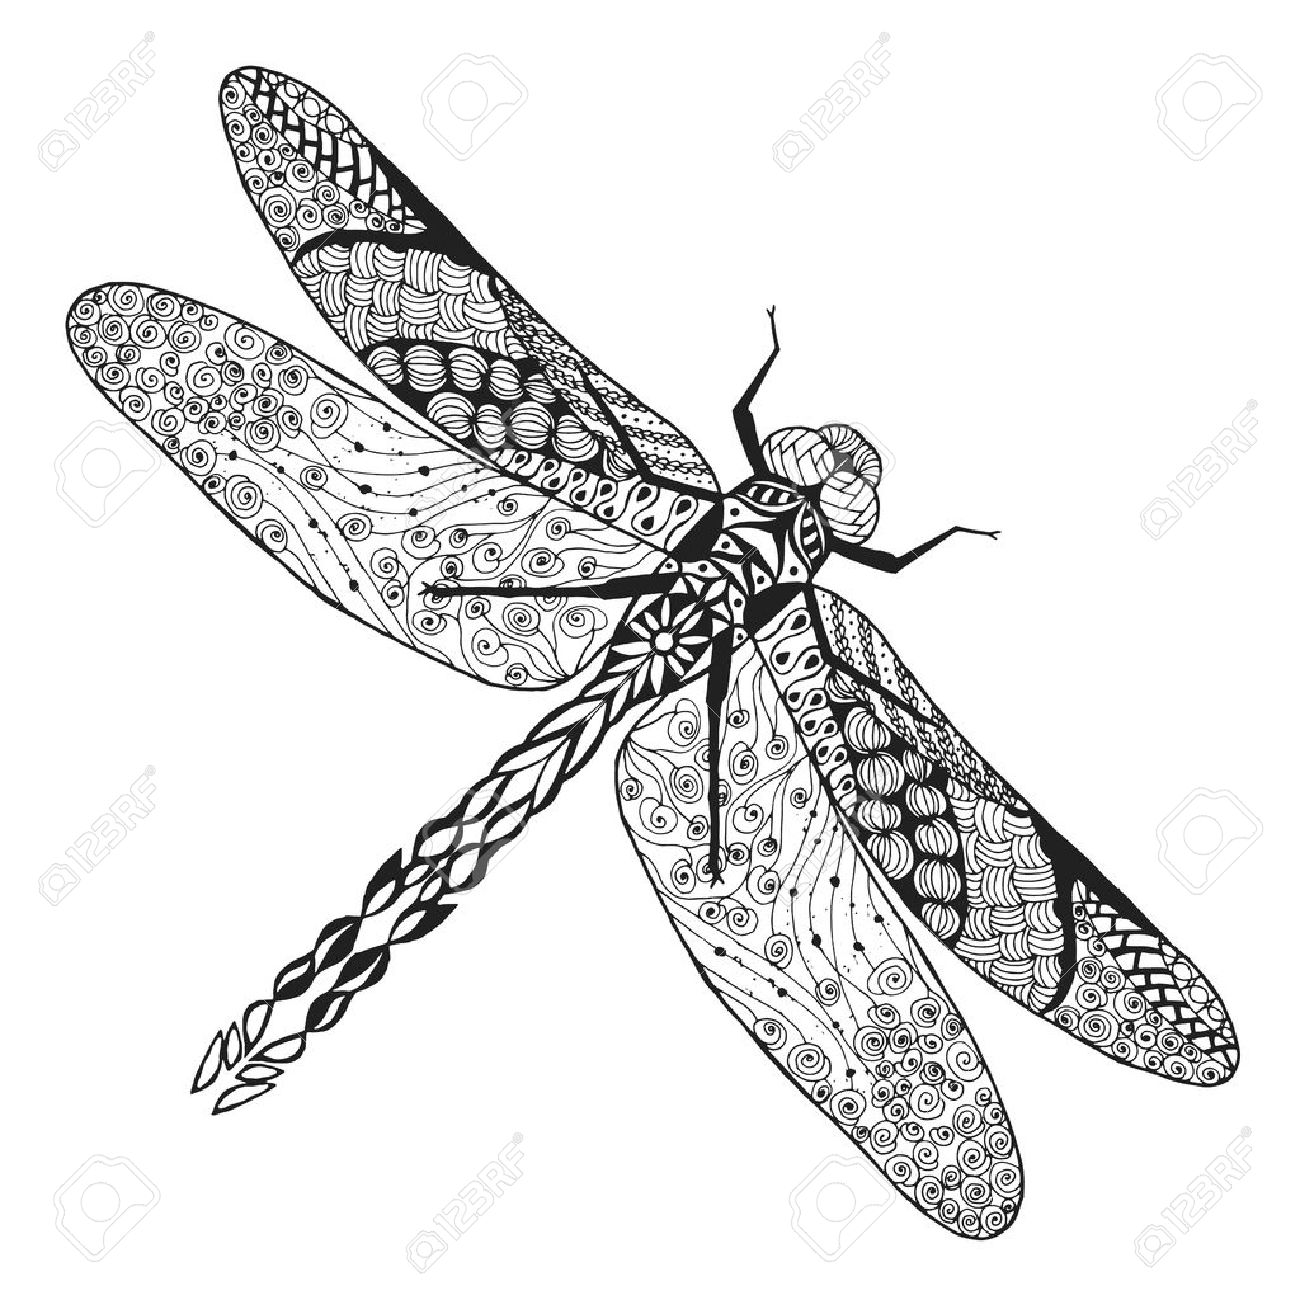 stylized dragonfly Sketch for avatar, posters, prints or t-shirt. Stock Vector - 45251939